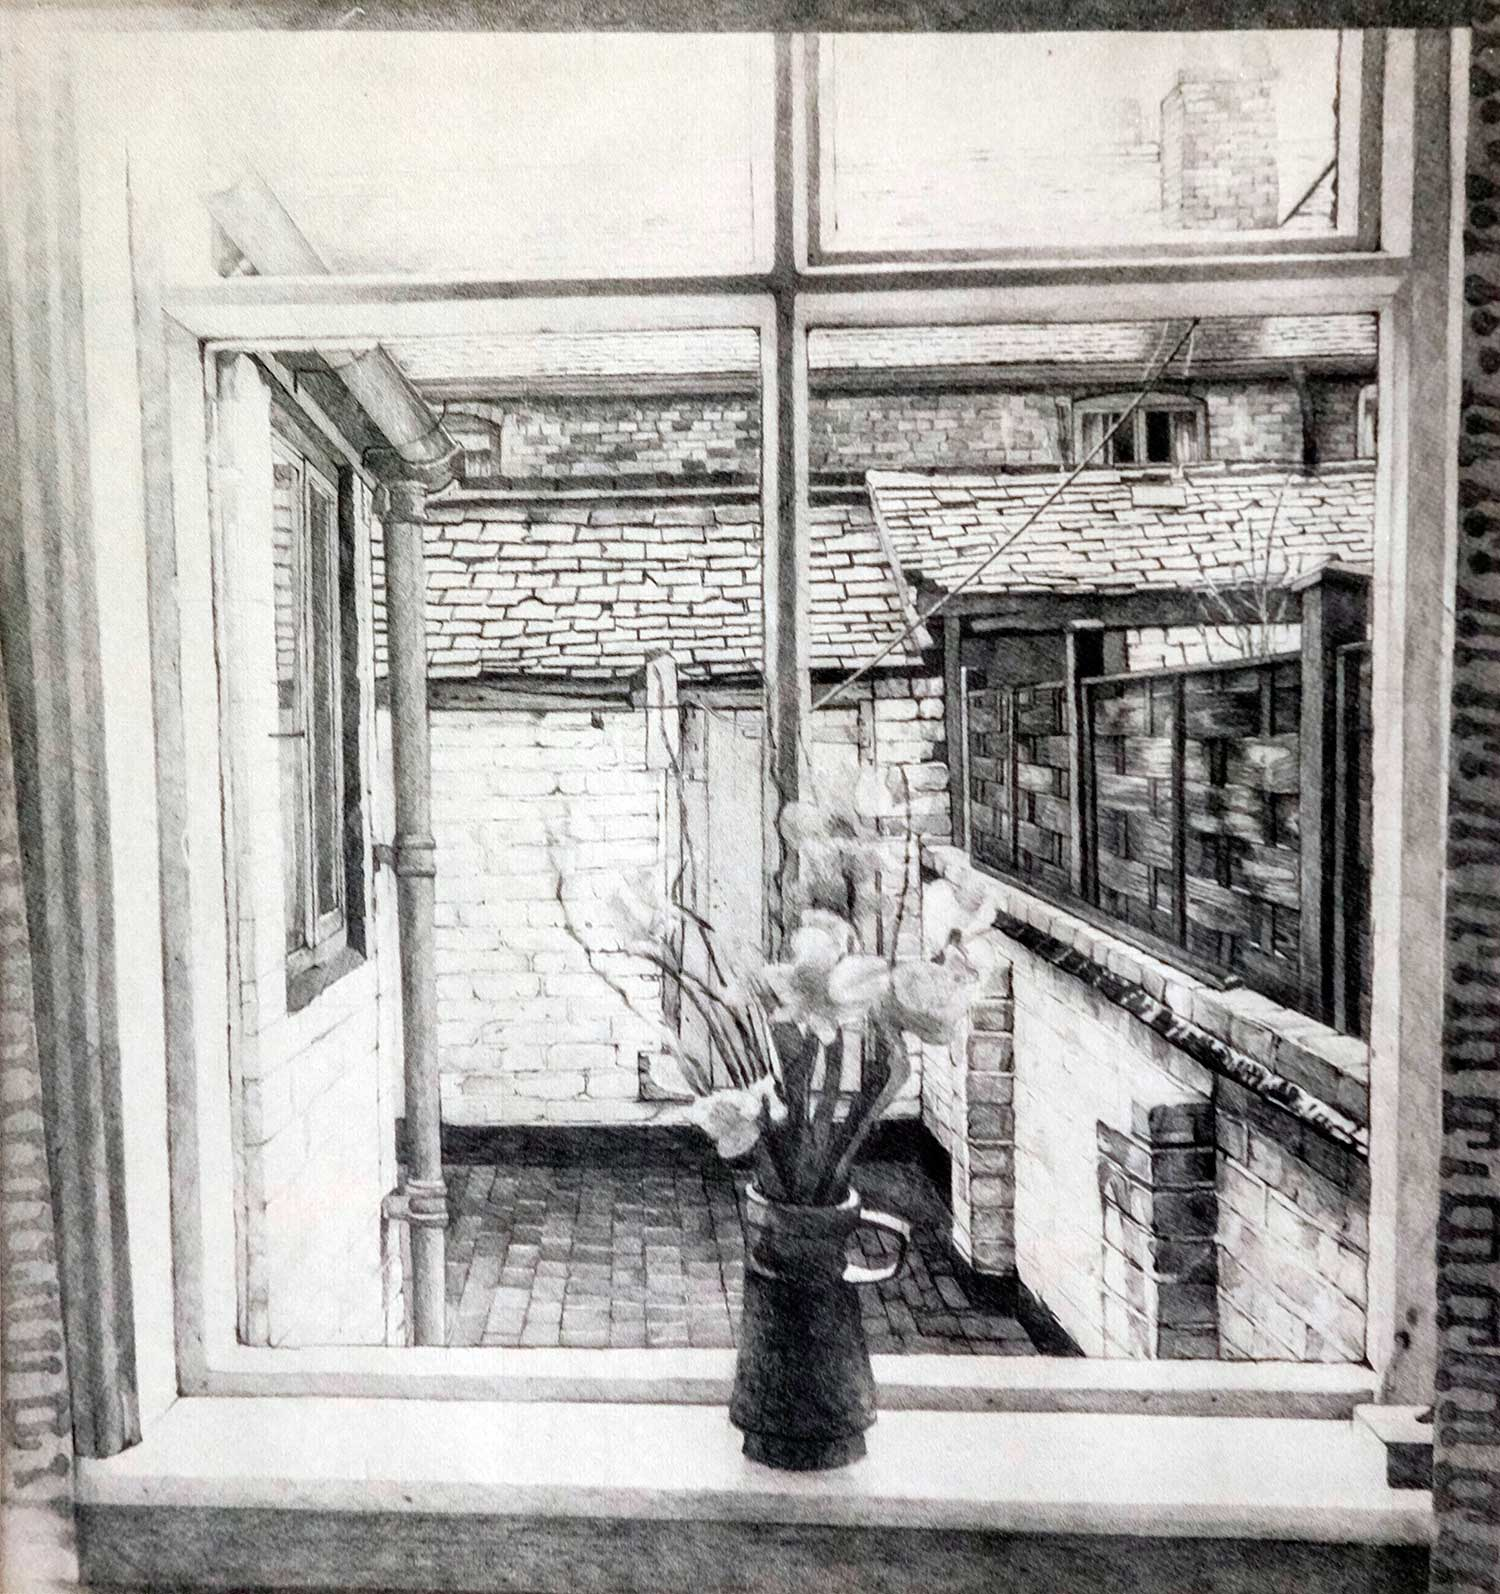 Doreen Fletcher's pencil drawing of 17 Bailey Street, Newcastle-under-Lyme, 1975